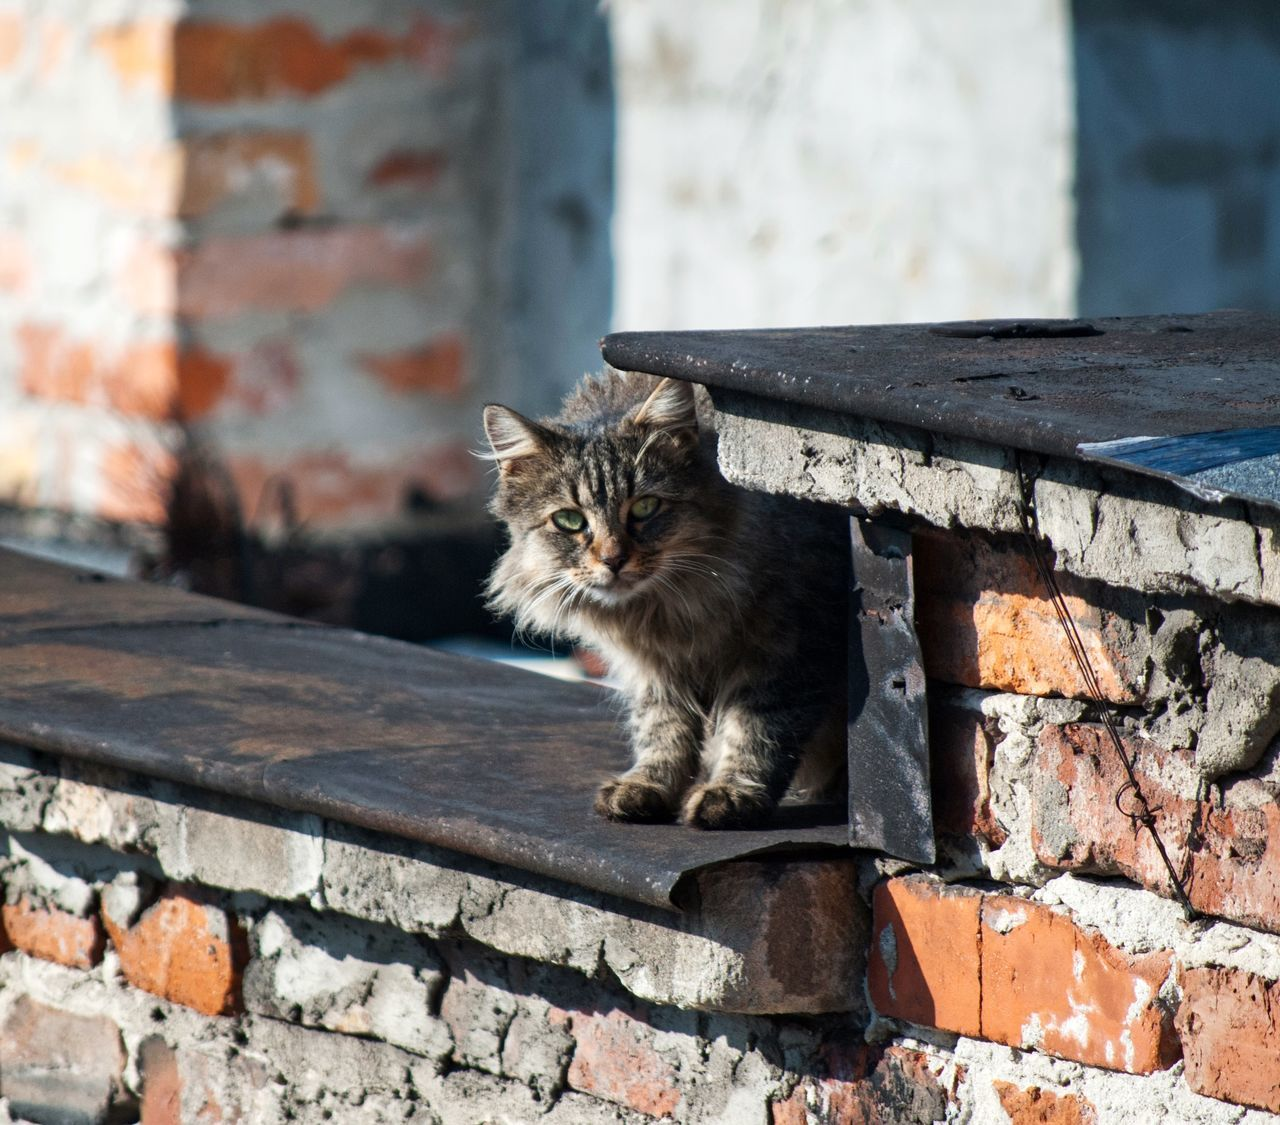 Abandoned Cat Alone Cat Animal Architecture Beutiful Cat Cat Cat Lovers Cat Outdoors Cat Photography Cats Cats Eye Cats Of EyeEm Cat♡ Citty Cat Citty Life City Cat City Life Homeless Cats Hunting Cat Live Lonley Lonley Cat Nature Roof Tile Sad & Lonely